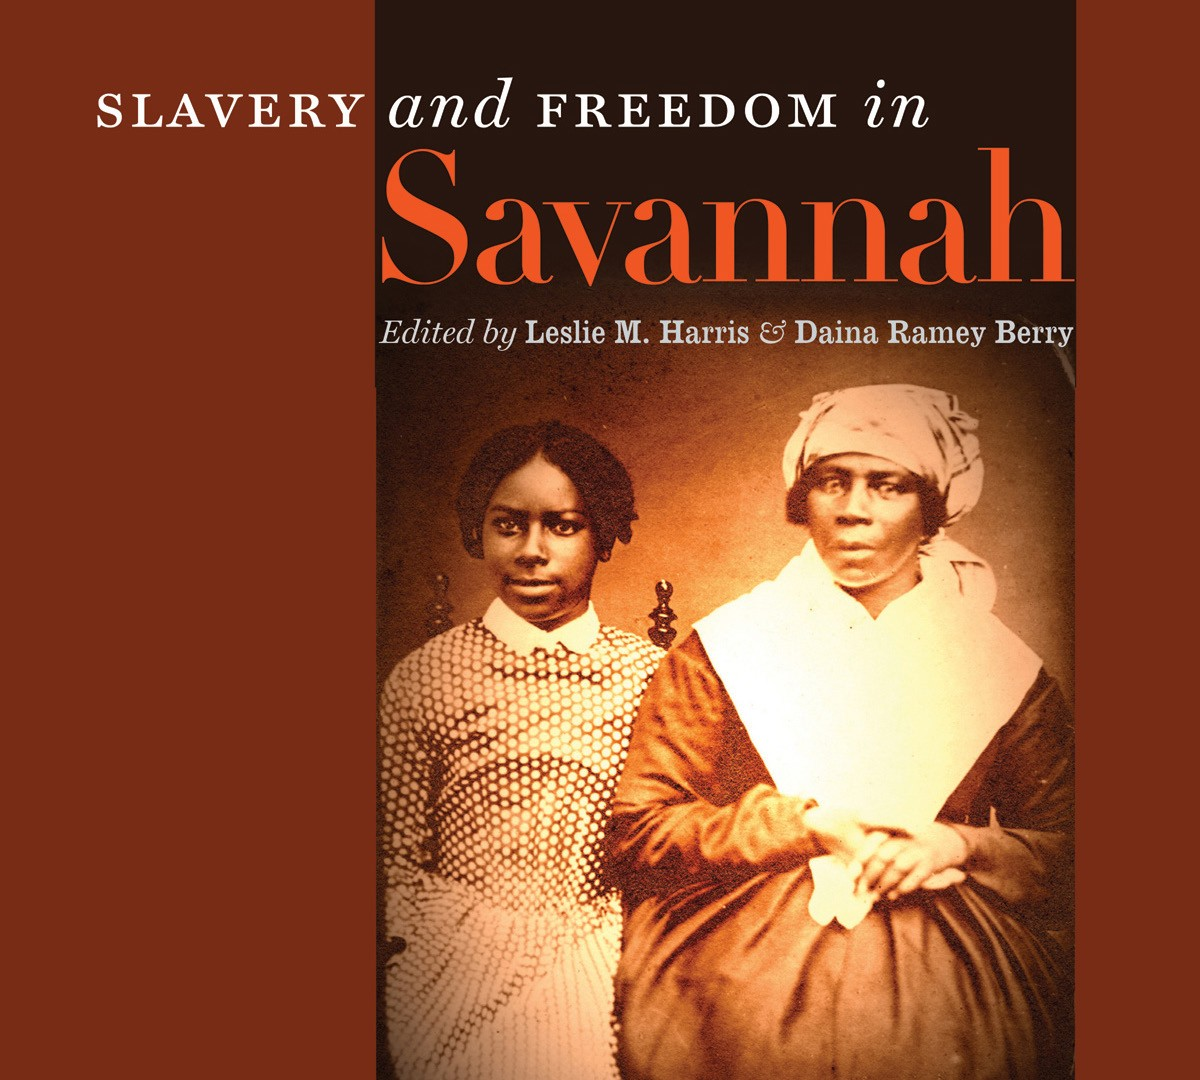 Slavery and Freedom in Savannah, book and exhibit, tell the story of slavery, emancipation, and black life in Savannah from the Colonial era into the mid-20th century.